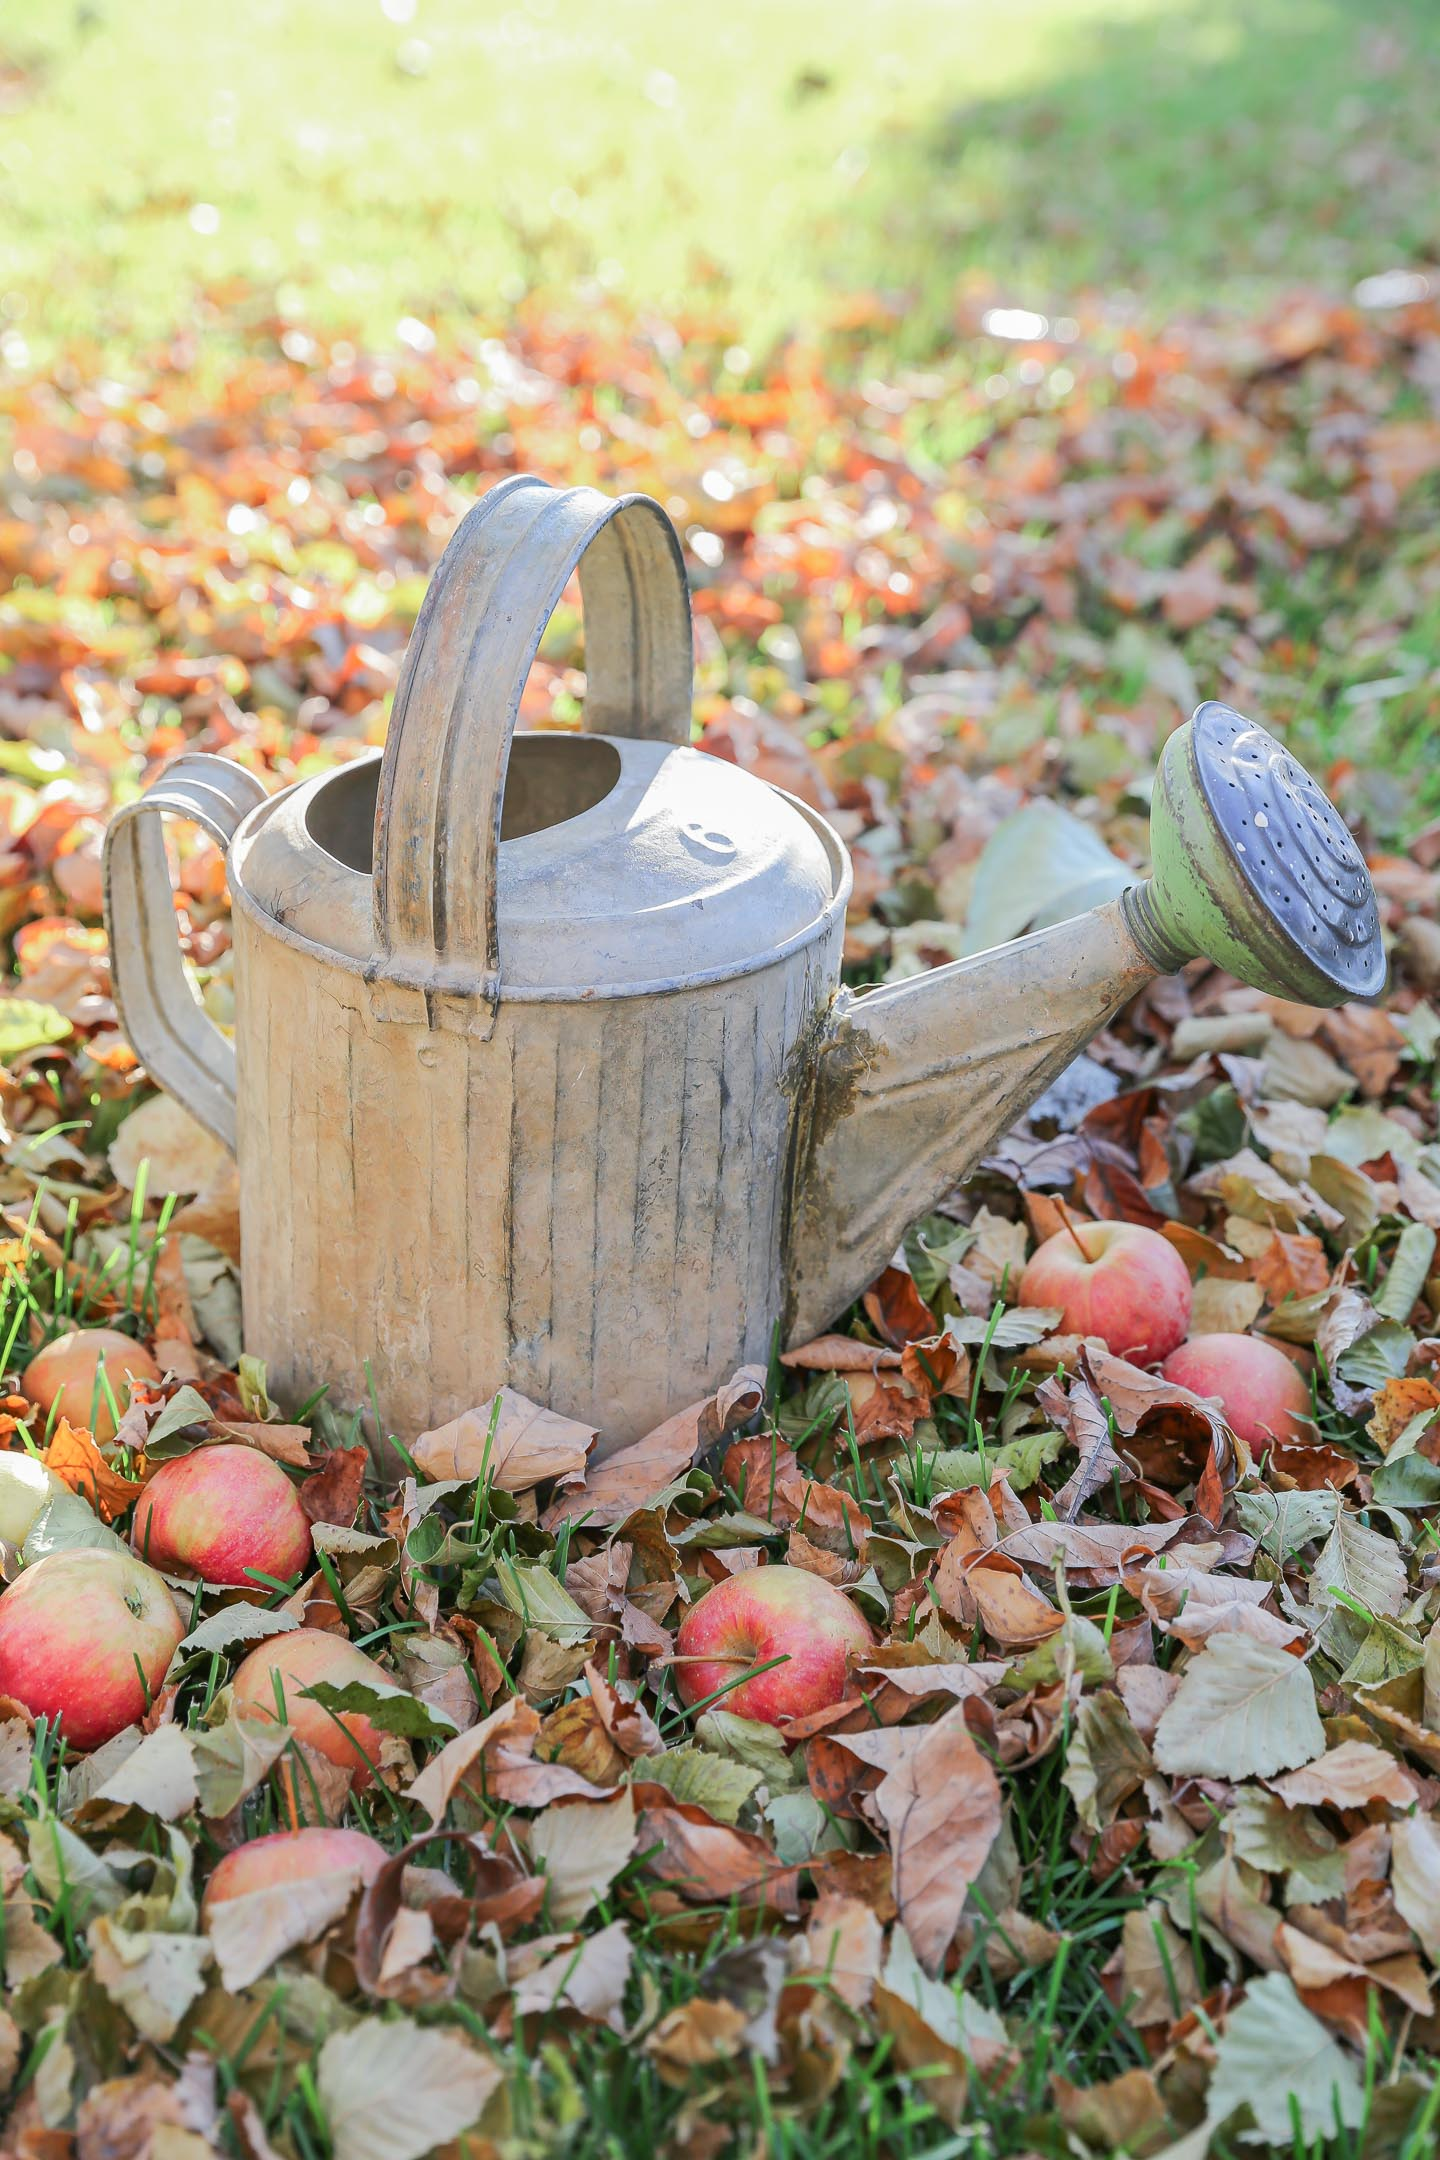 Vintage watering can sitting in the leaves and surrounded by apples.